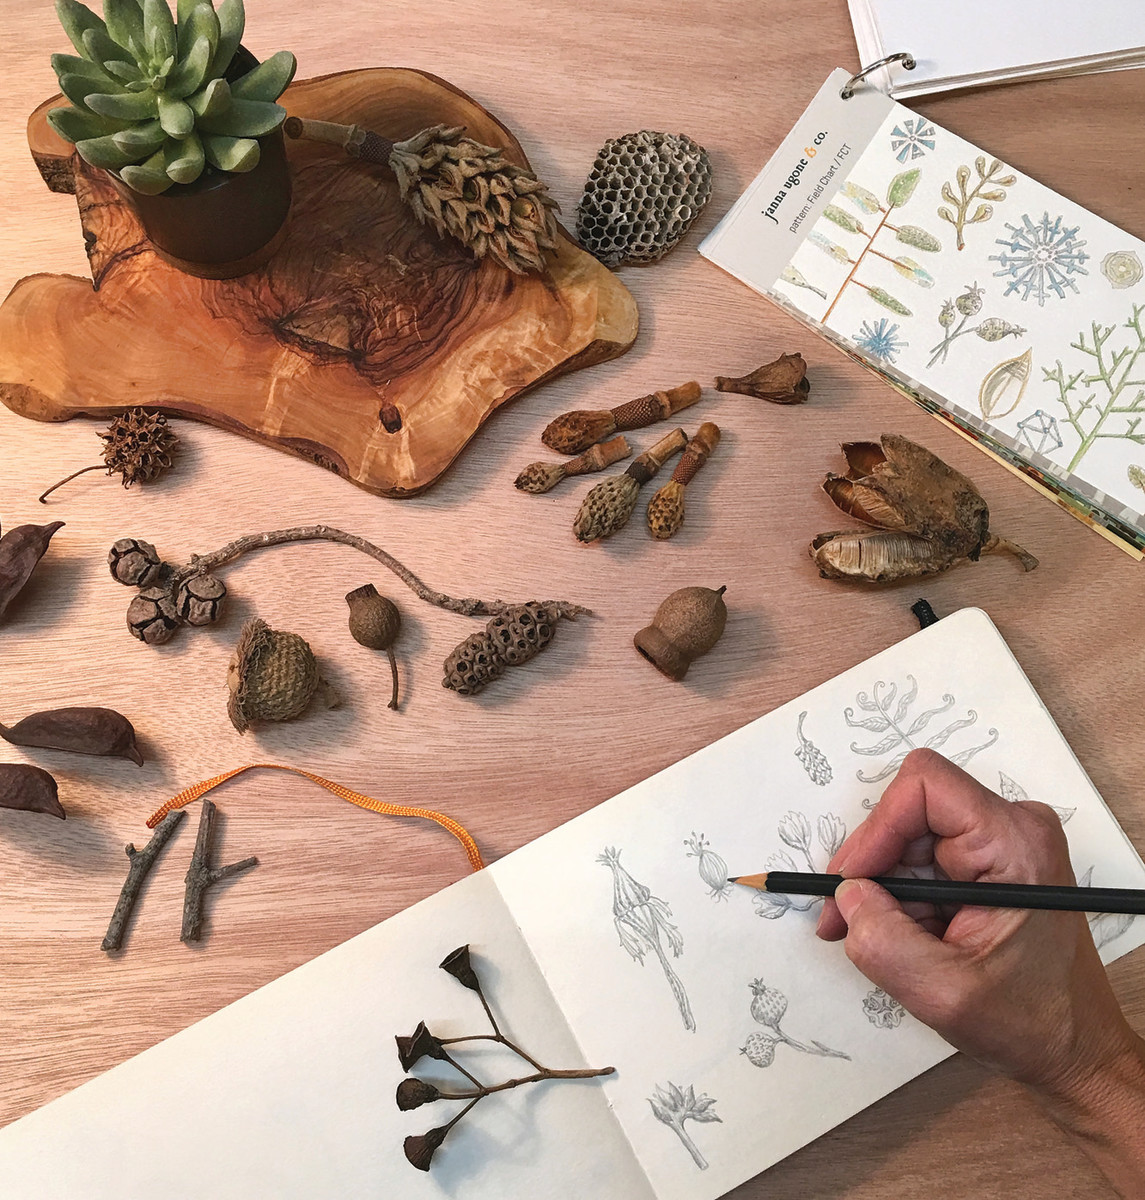 Many botanical designs are sketched from samples the artist collects from woods and fields near her home.